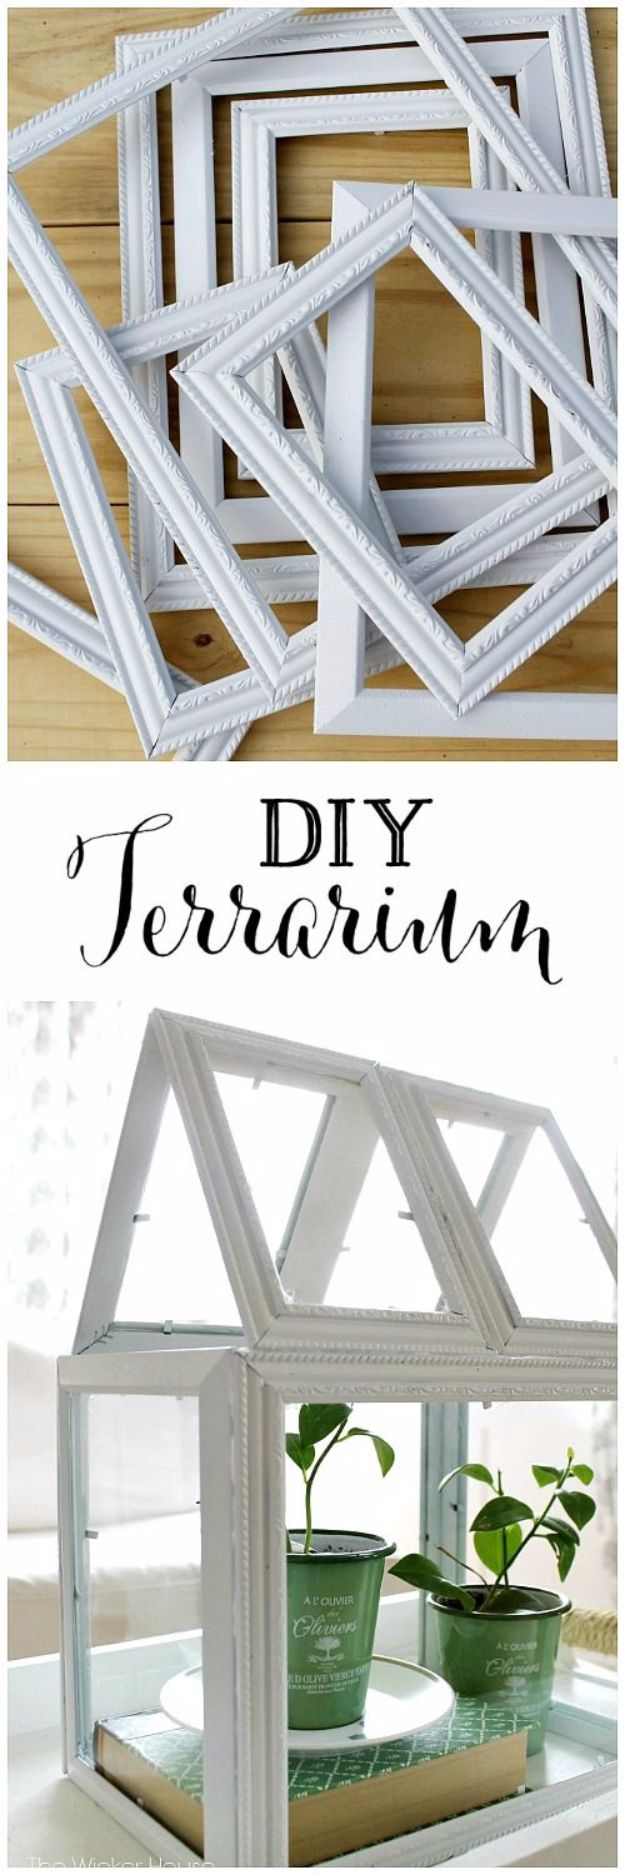 DIY Terrarium Ideas - Picture Frame Greenhouse Terrarium - Cool Terrariums and Crafts With Mason Jars, Succulents, Wood, Geometric Designs and Reptile, Acquarium - Easy DIY Terrariums for Adults and Kids To Make at Home